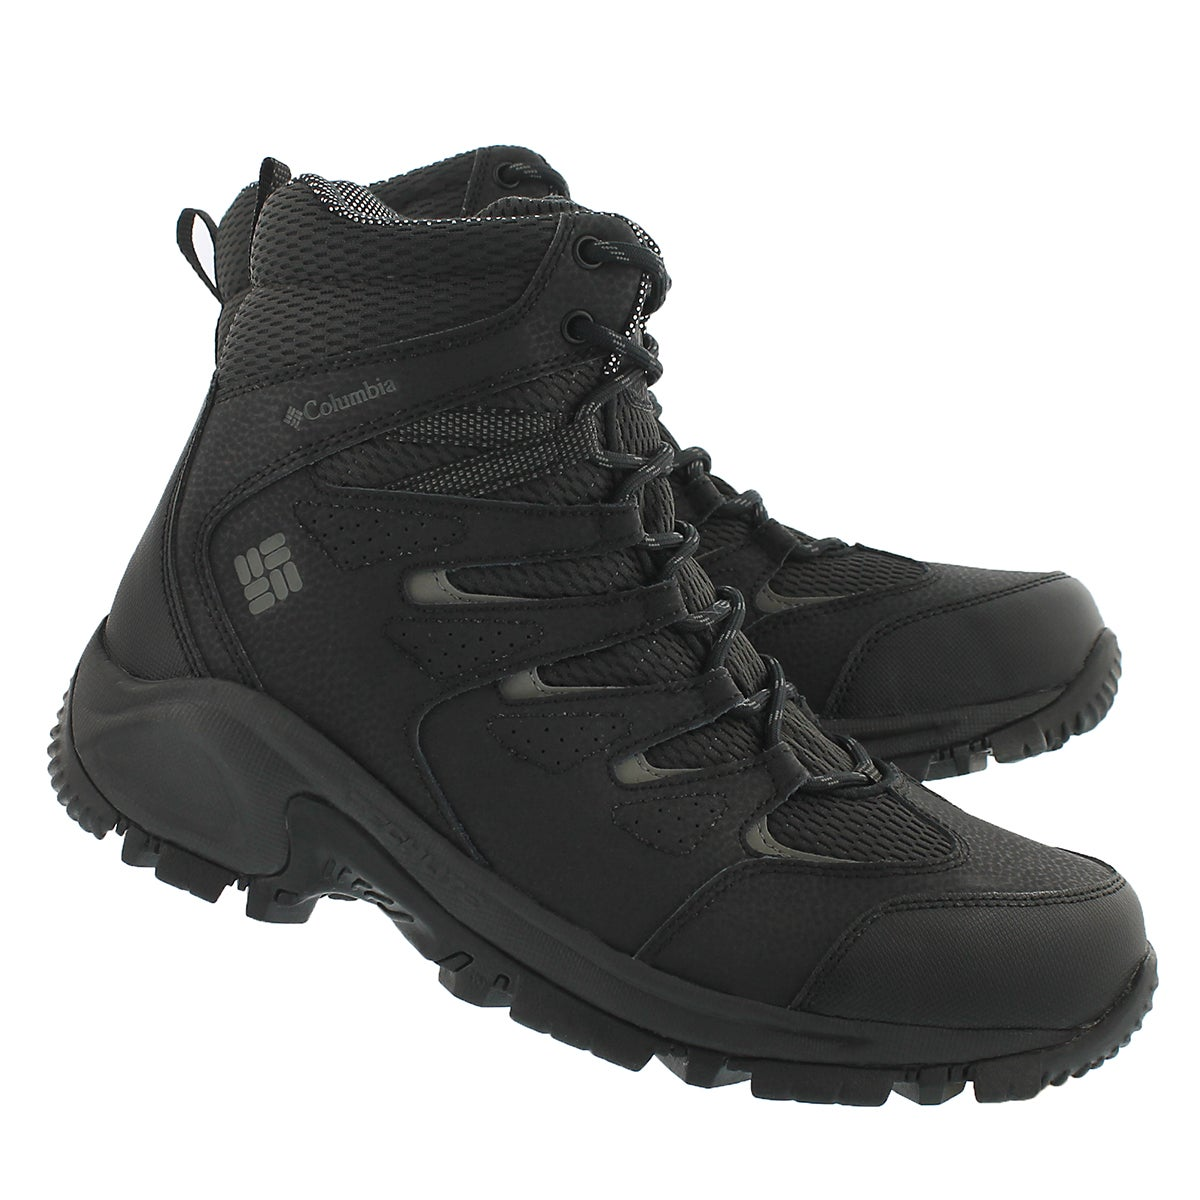 Mns Gunnison OmniHeat shark snow boot